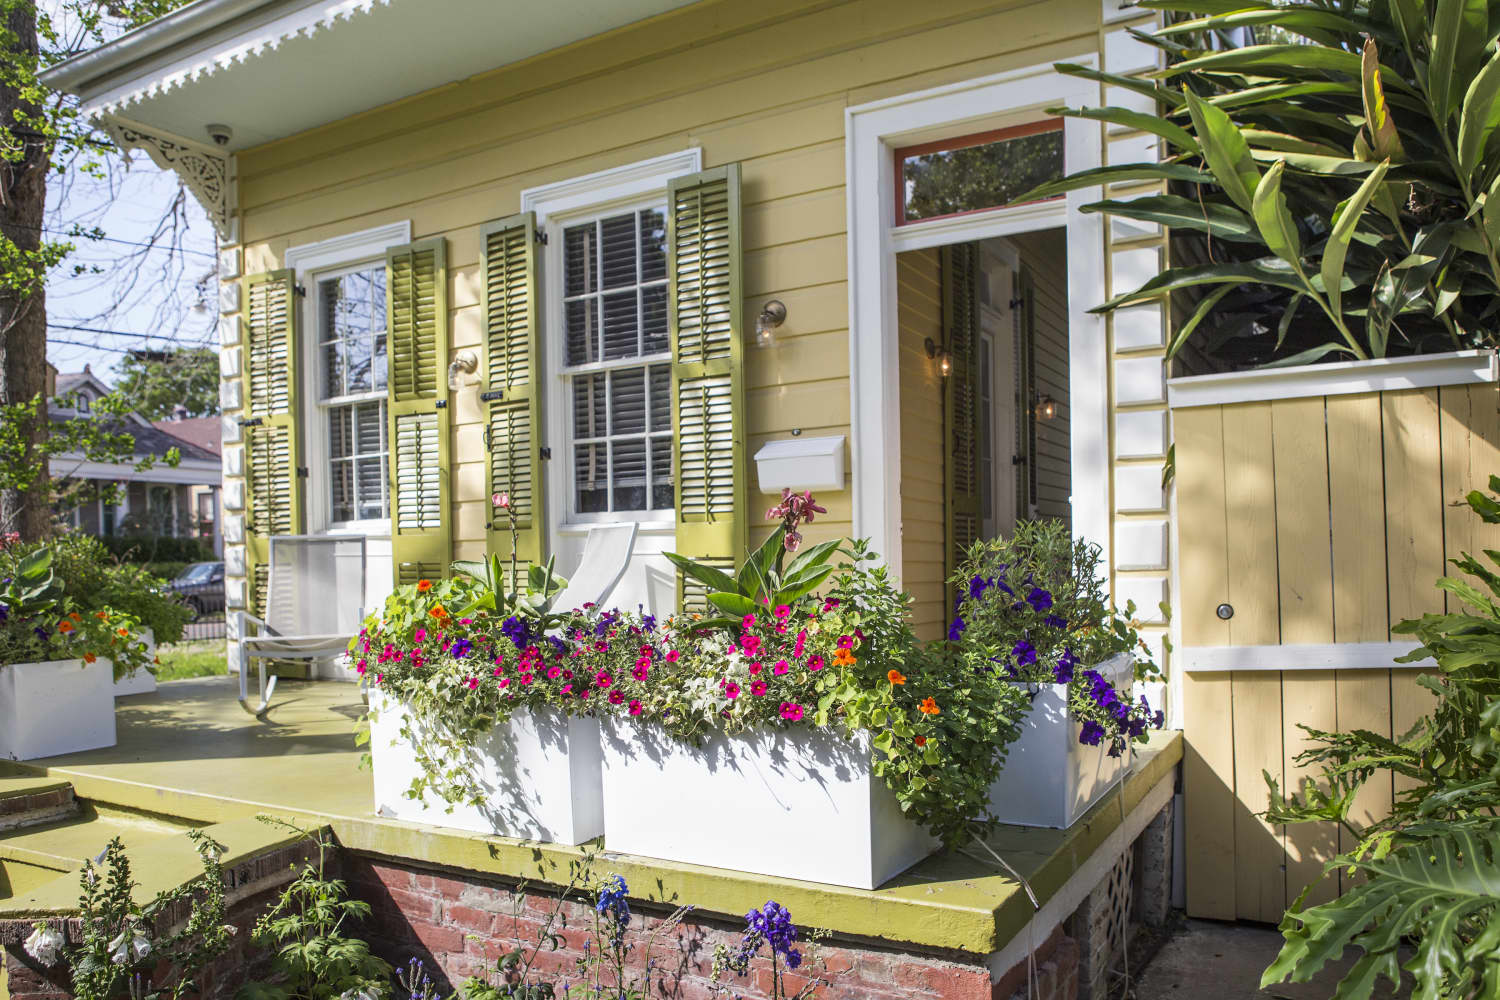 The Small Home Improvement Projects That Make A Big Difference, According To Reddit